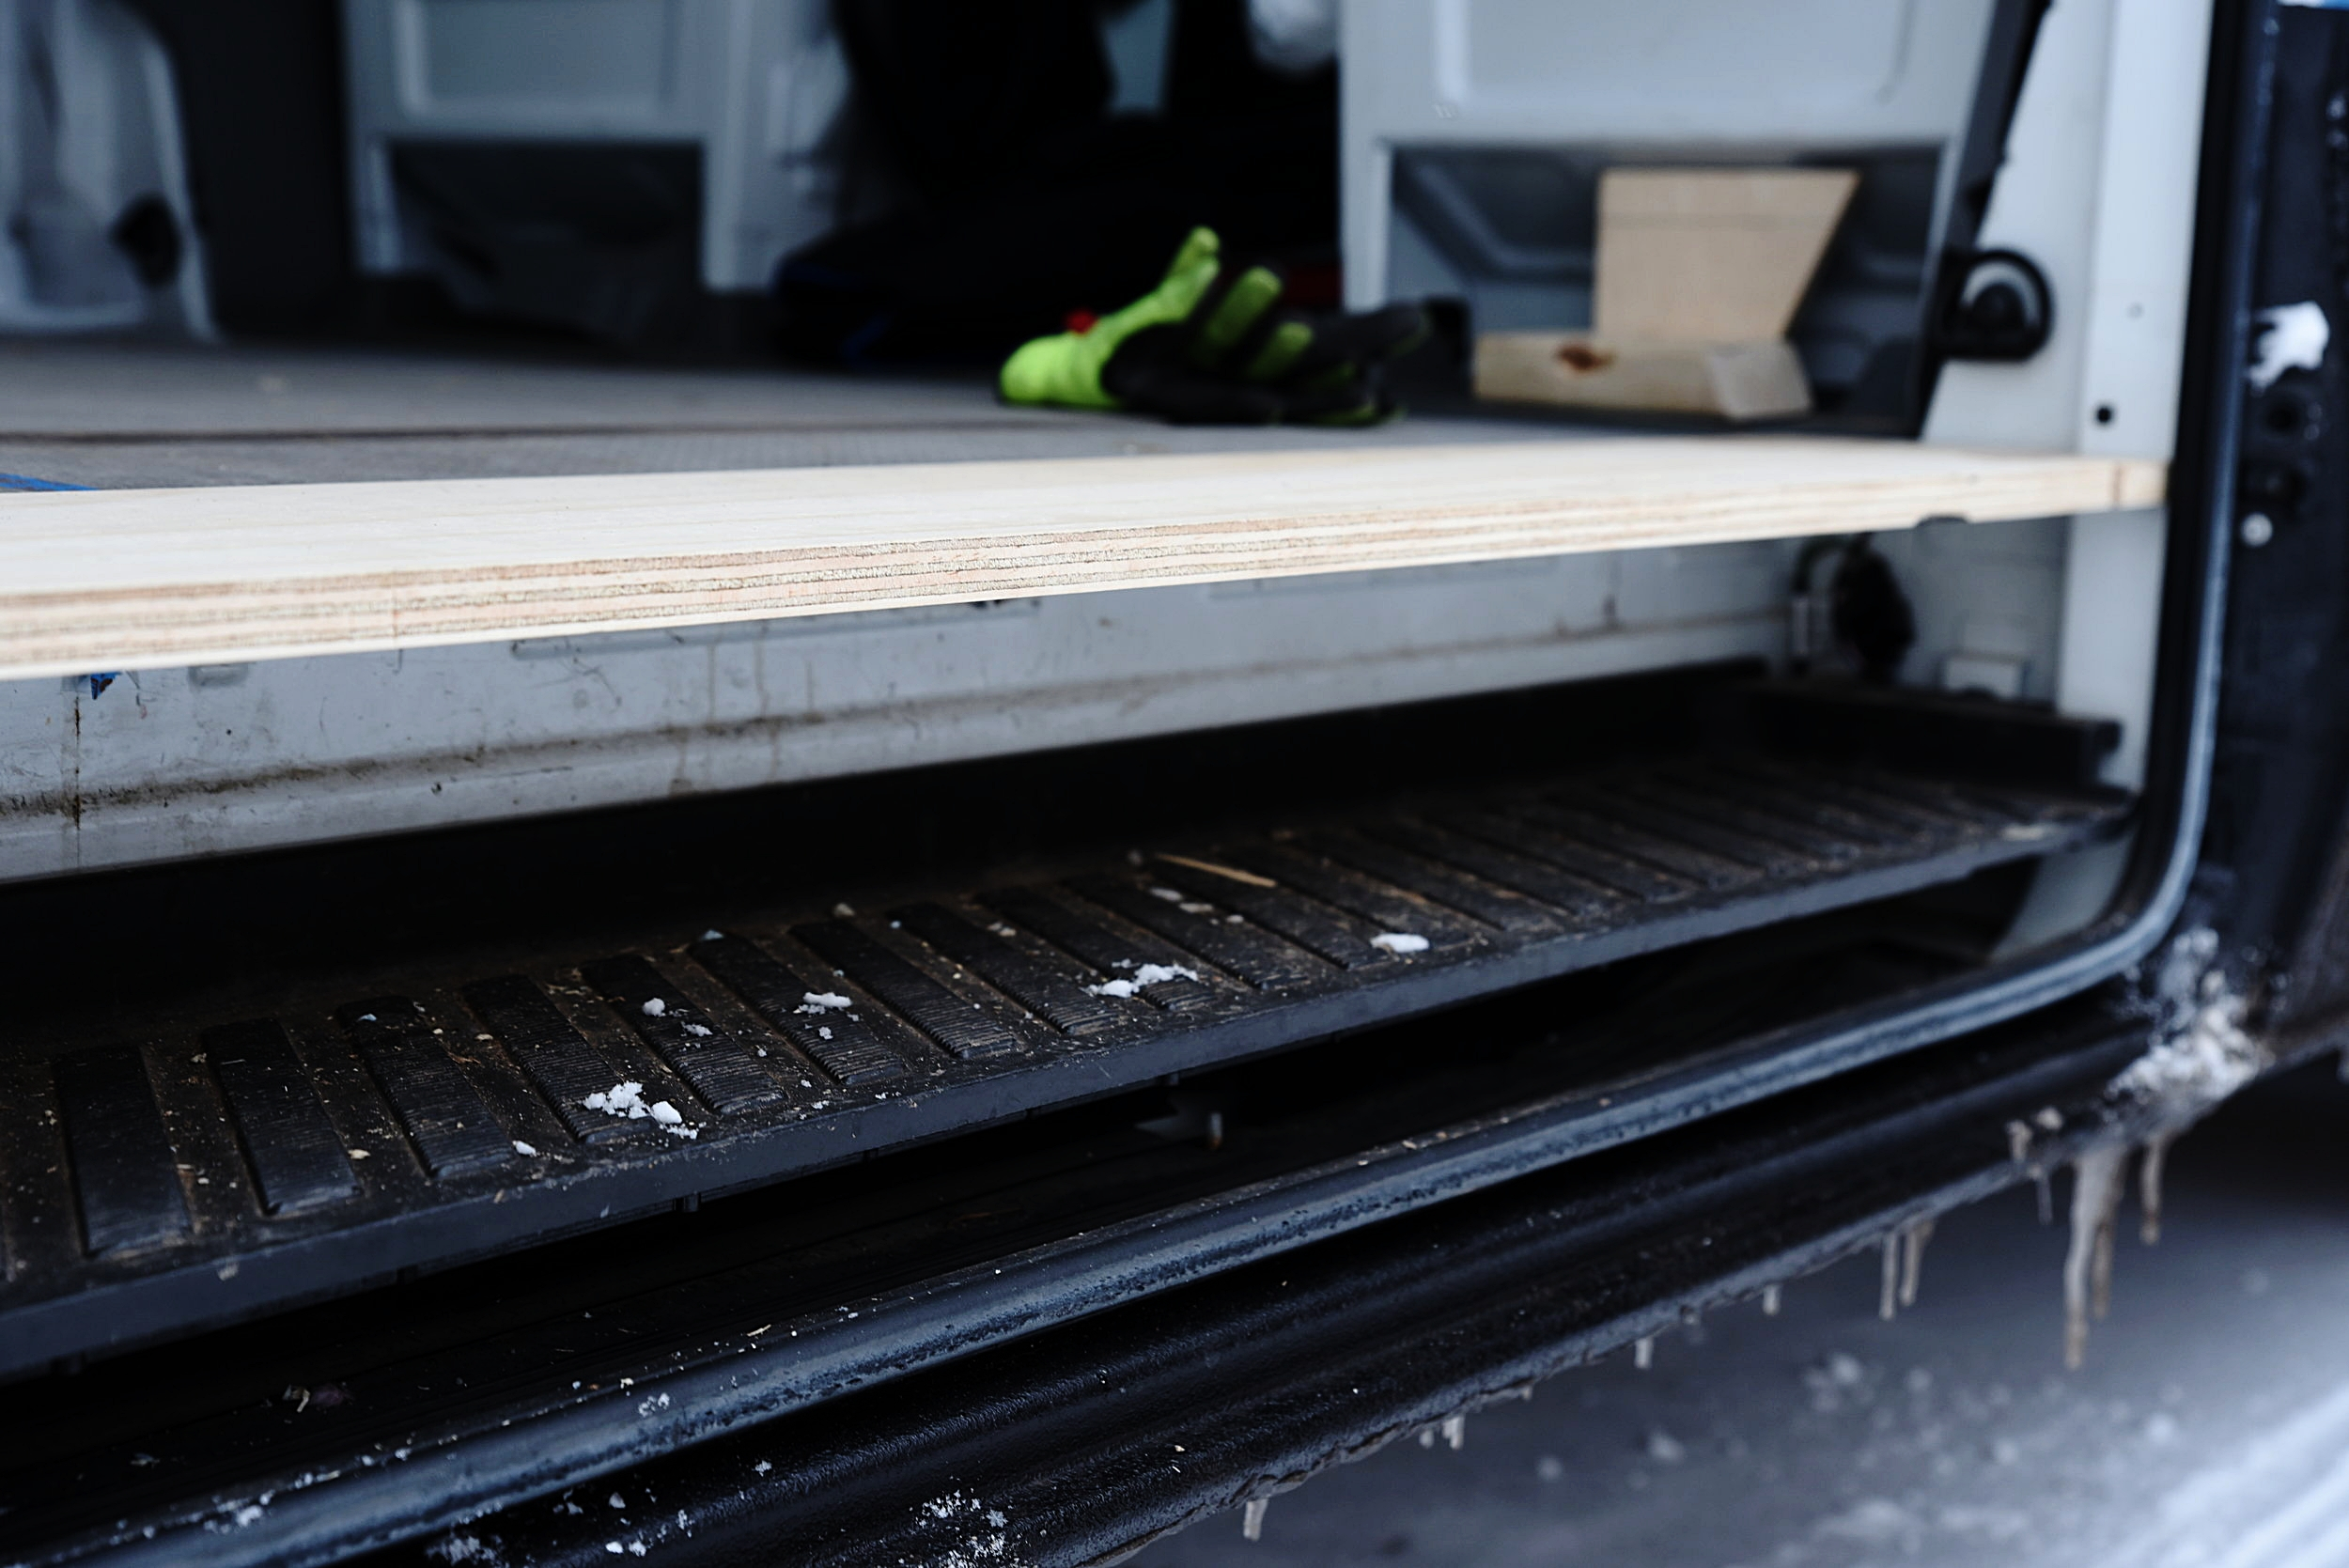 The step is made from a sturdy, high-quality 3/4-inch plywood.